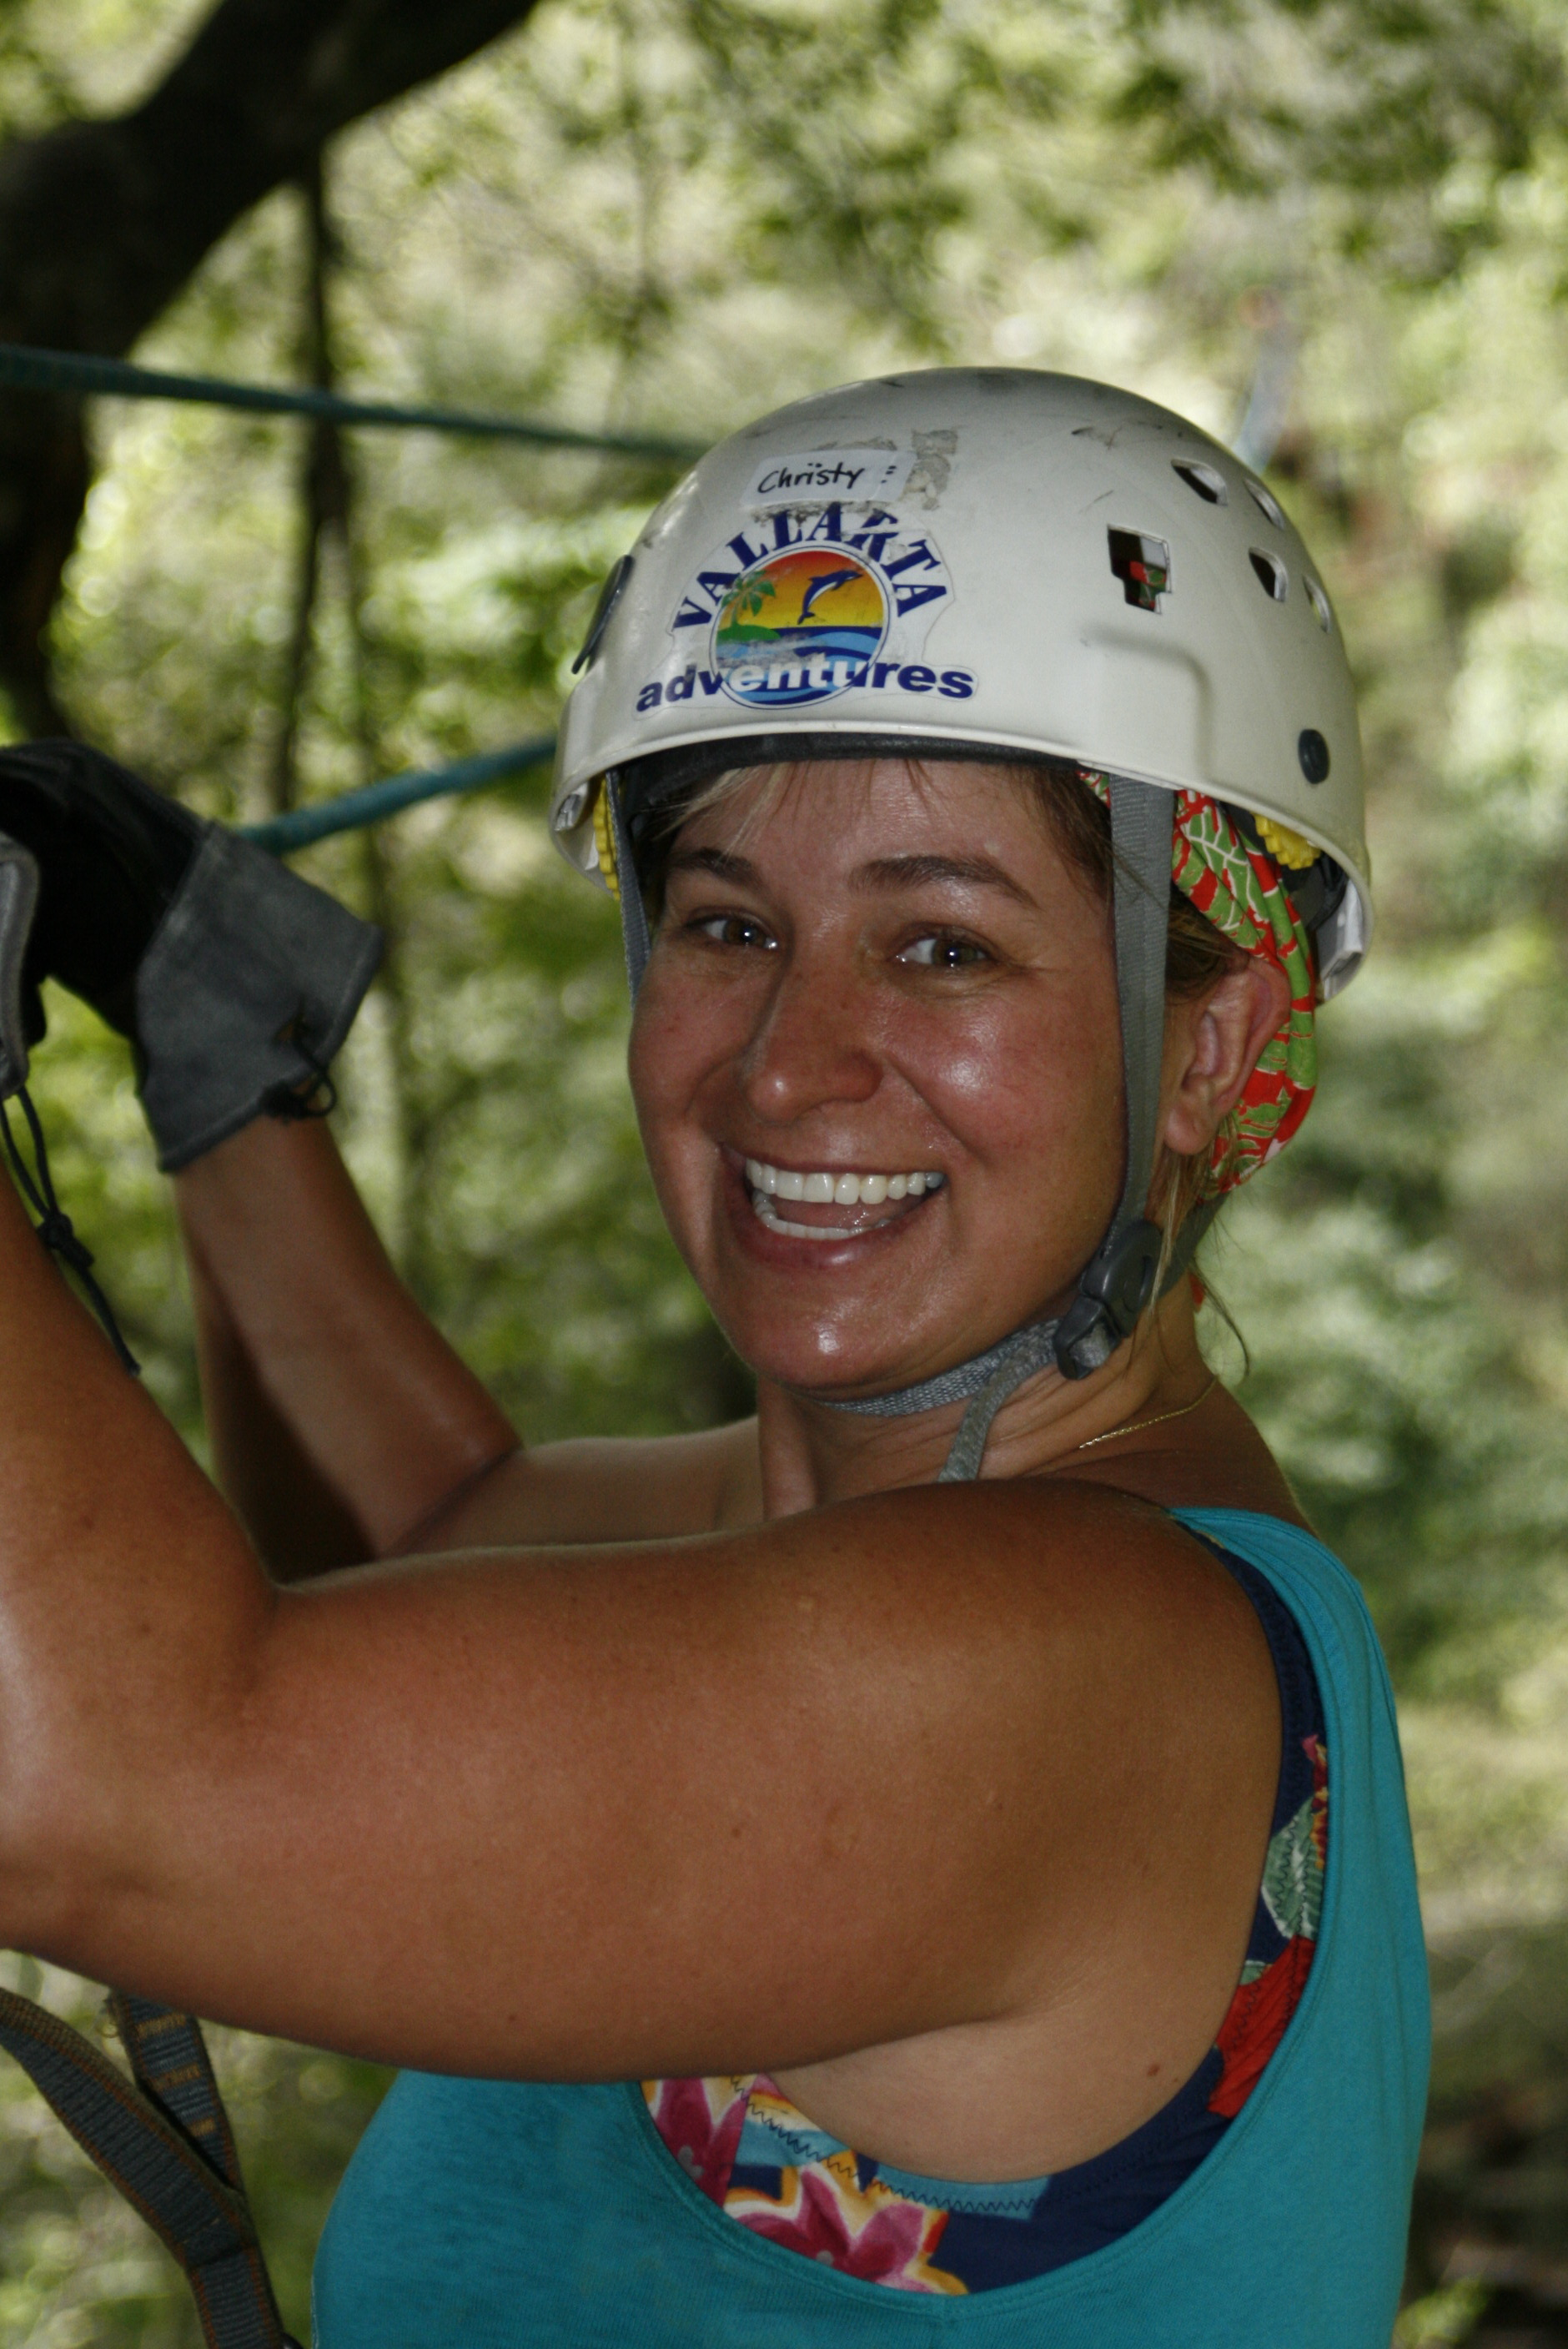 Christy Ziplining in Mazatlan, Summer 2008